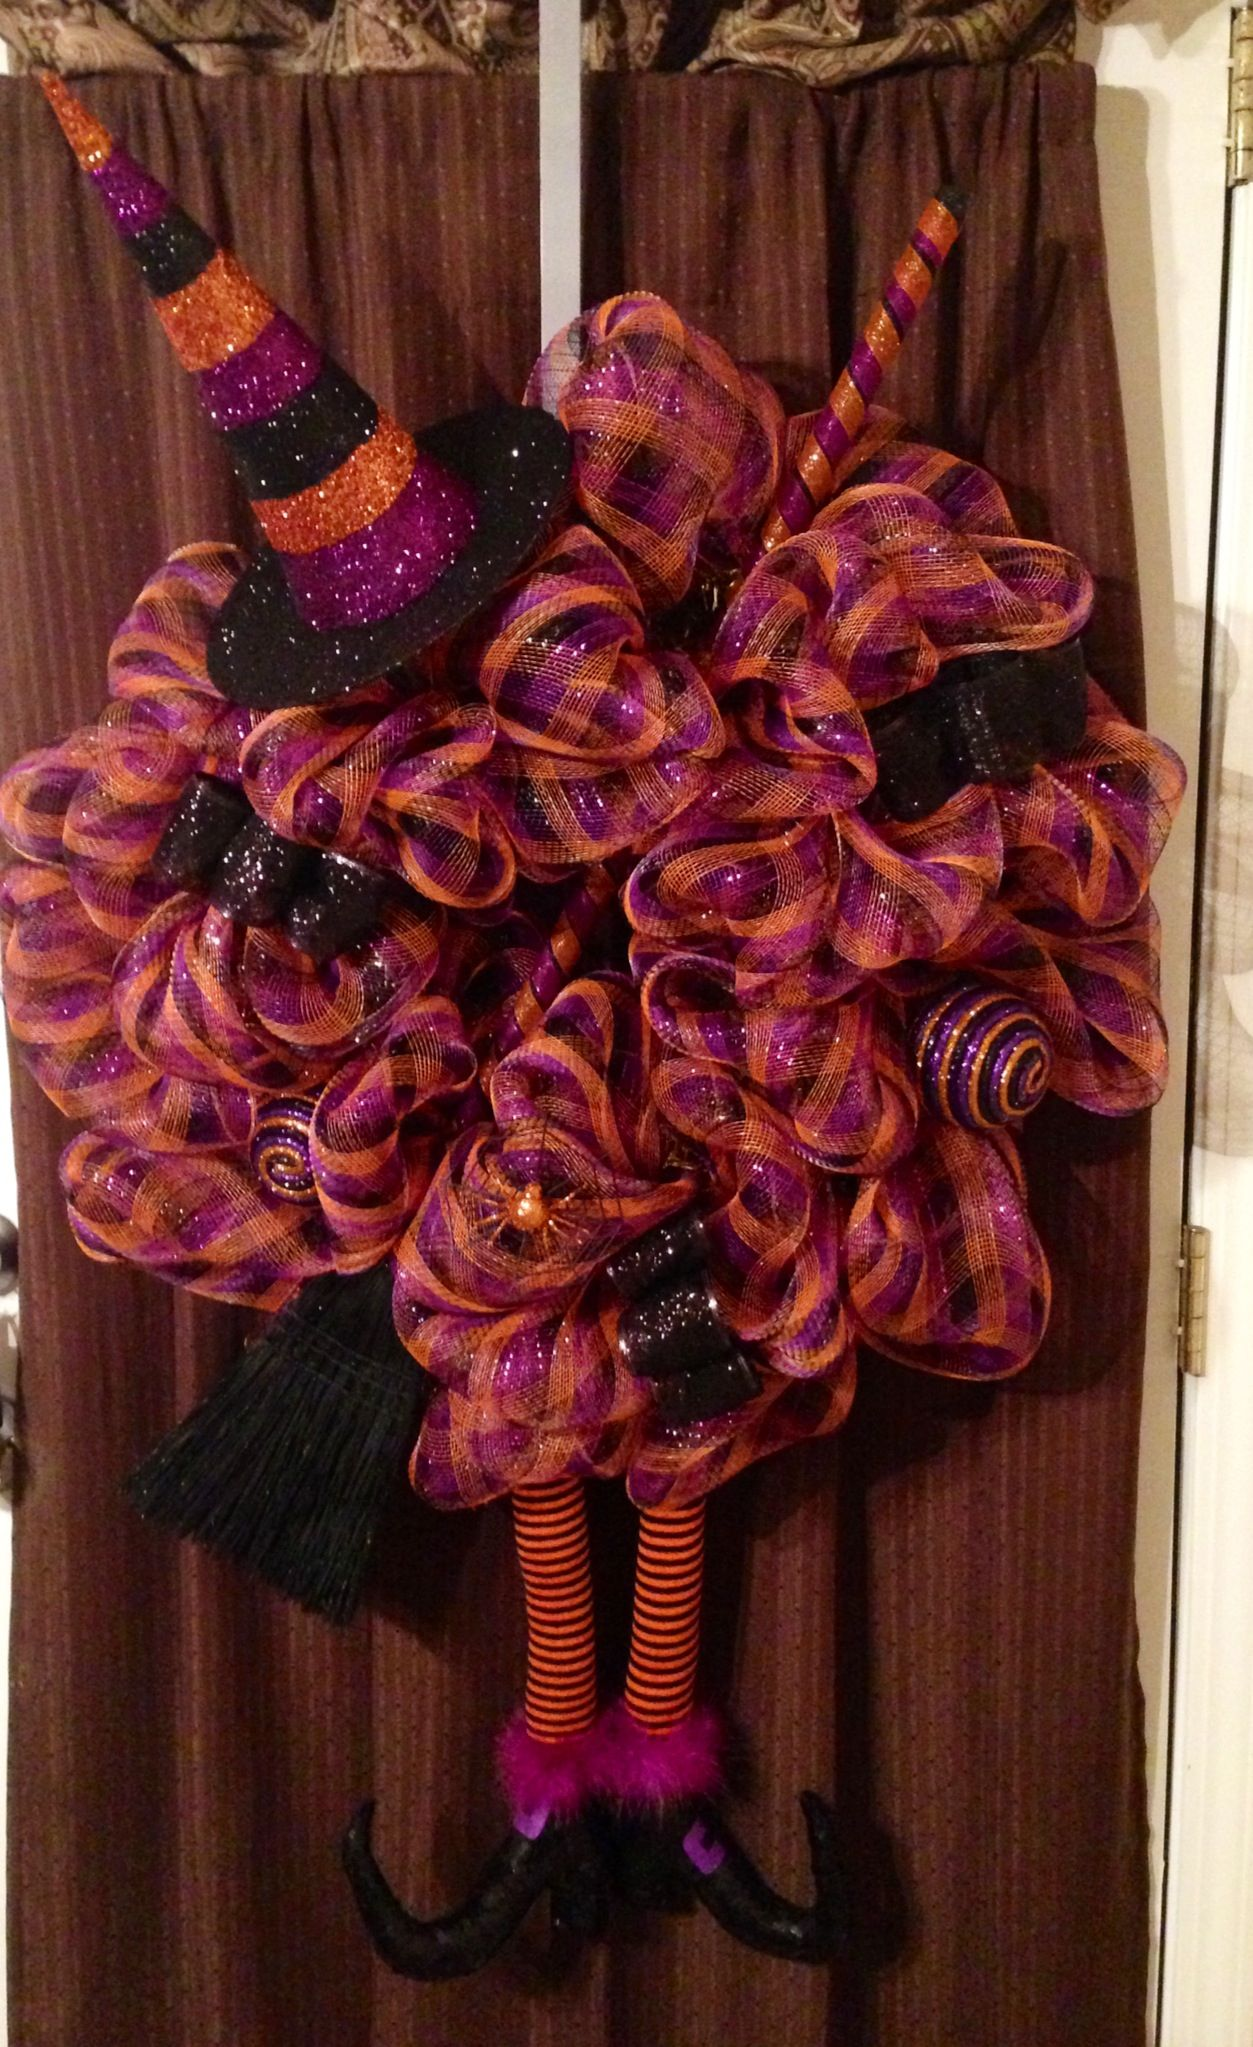 Halloween Witch Wreath 1 only $135.00  By: Nicole Leigh Designs @ nicoleleighdesigns@yahoo.com